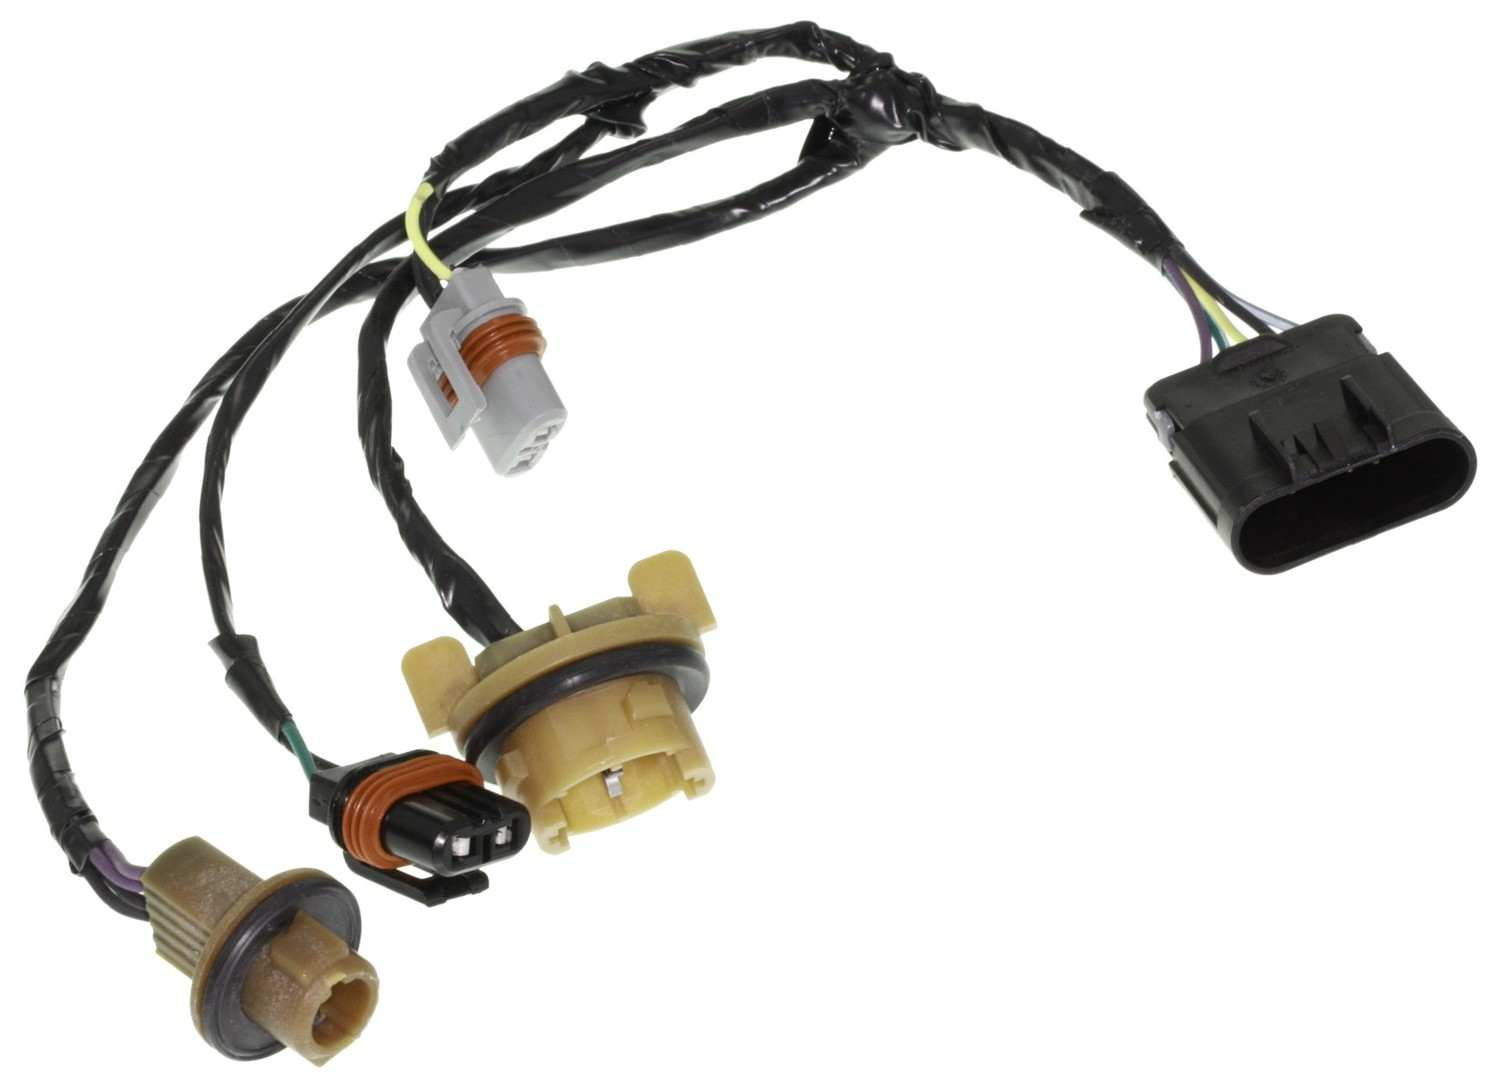 buick lucerne headlight wiring harness buick diy wiring diagrams description headlight wiring harness airtex 1p2178 fits 06 07 buick lucerne